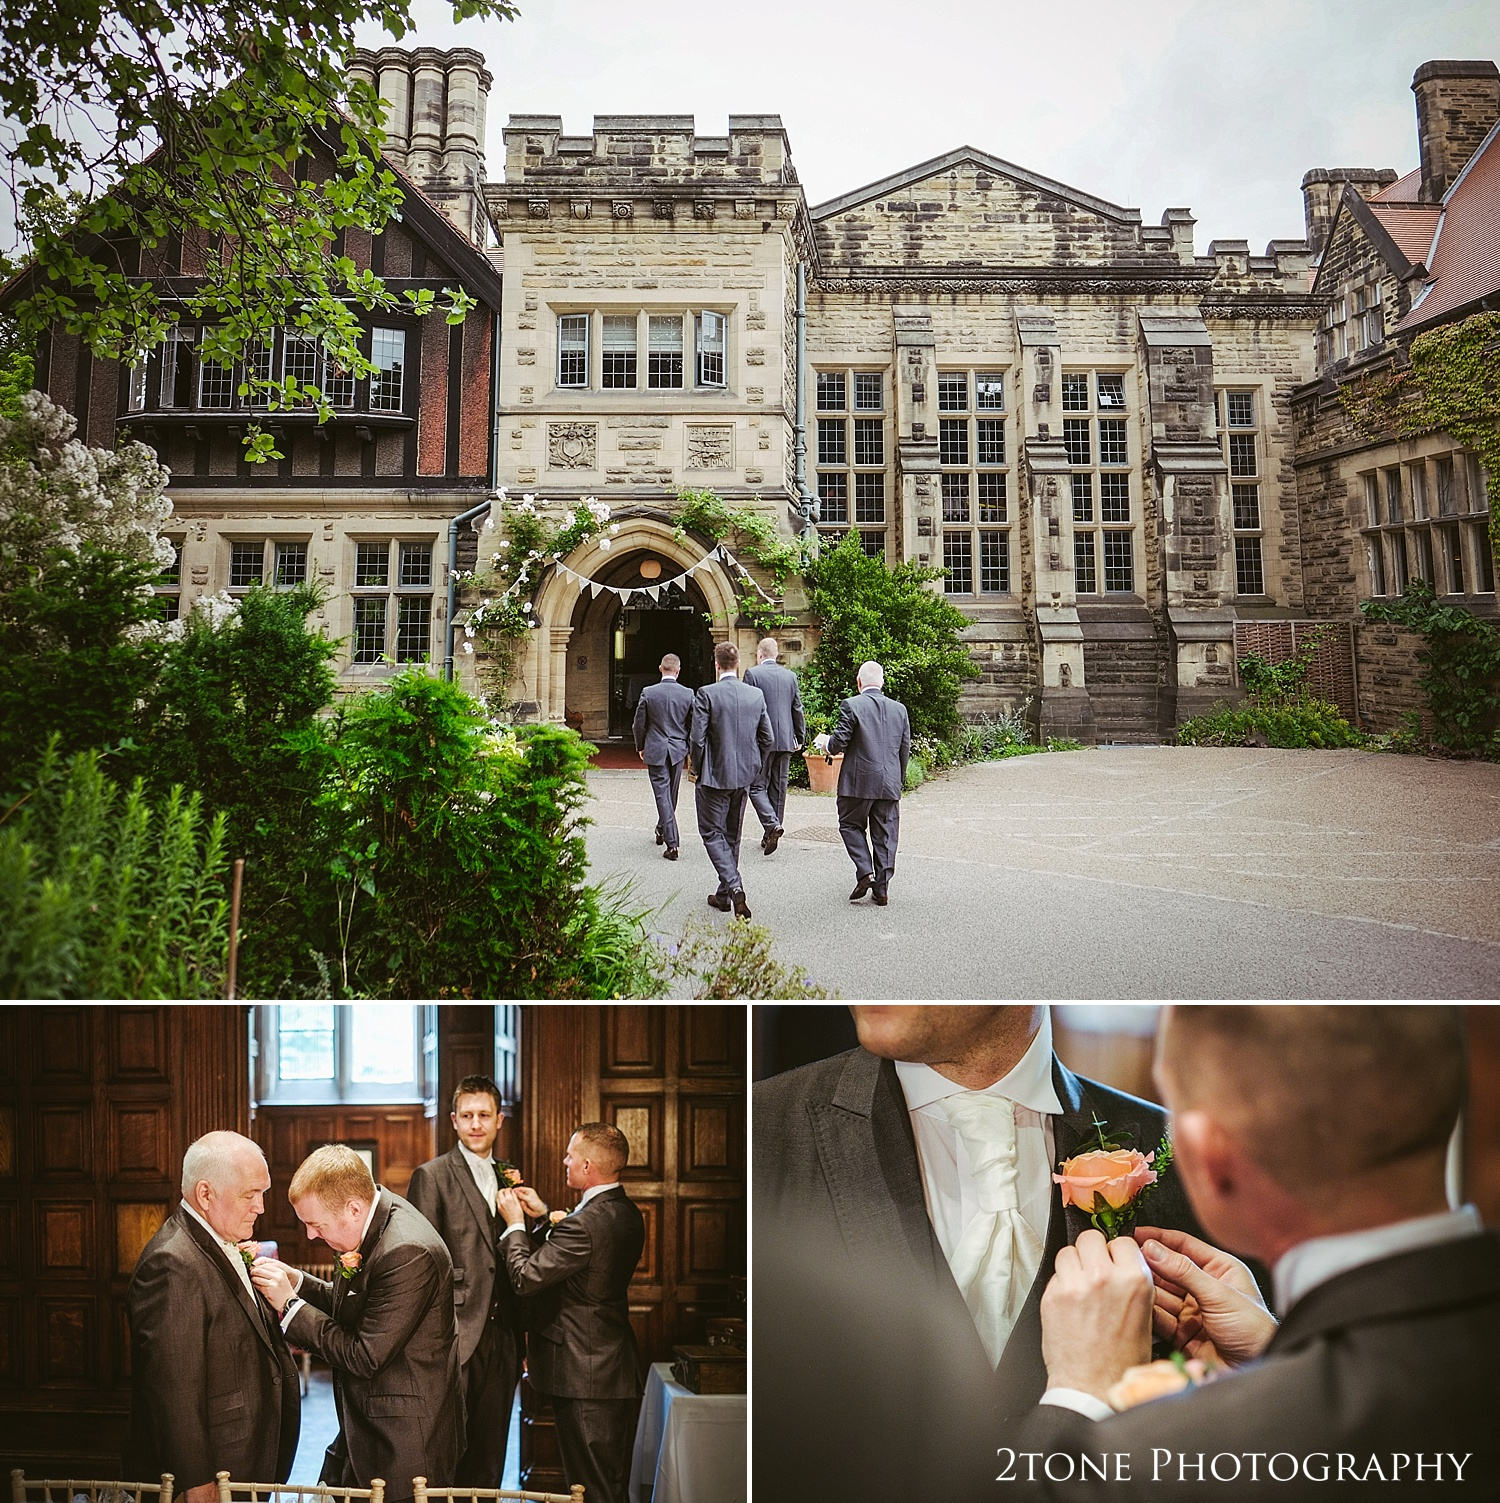 The groom arriving for his wedding at Jesmond Dene House in Newcastle by 2tone Photography www.2tonephotography.co.uk